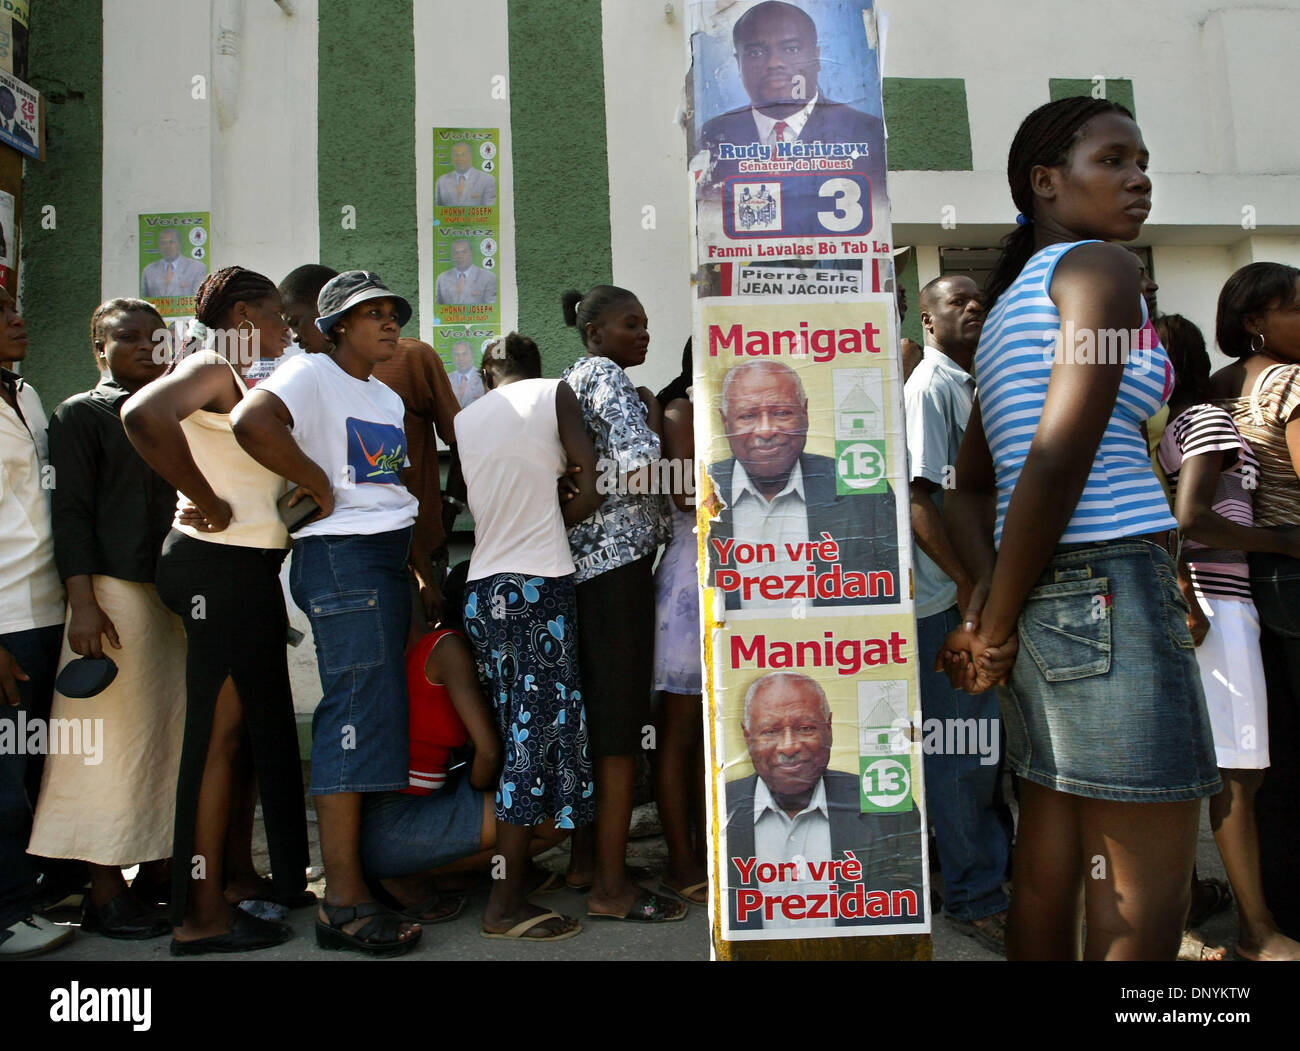 Feb 03, 2006; Port-Au-Prince, HAITI; Haitians line up to get their voting cards outside  elections headquarters Friday.   Officials say about 20% of the 3.5 million cards had not yet been distributed by midweek. Leslie Manigat, featured in one of the campaign posters on a power pole, was first elected president in January 1988, after the fall of the Duvalier regime, but was overthr - Stock Image